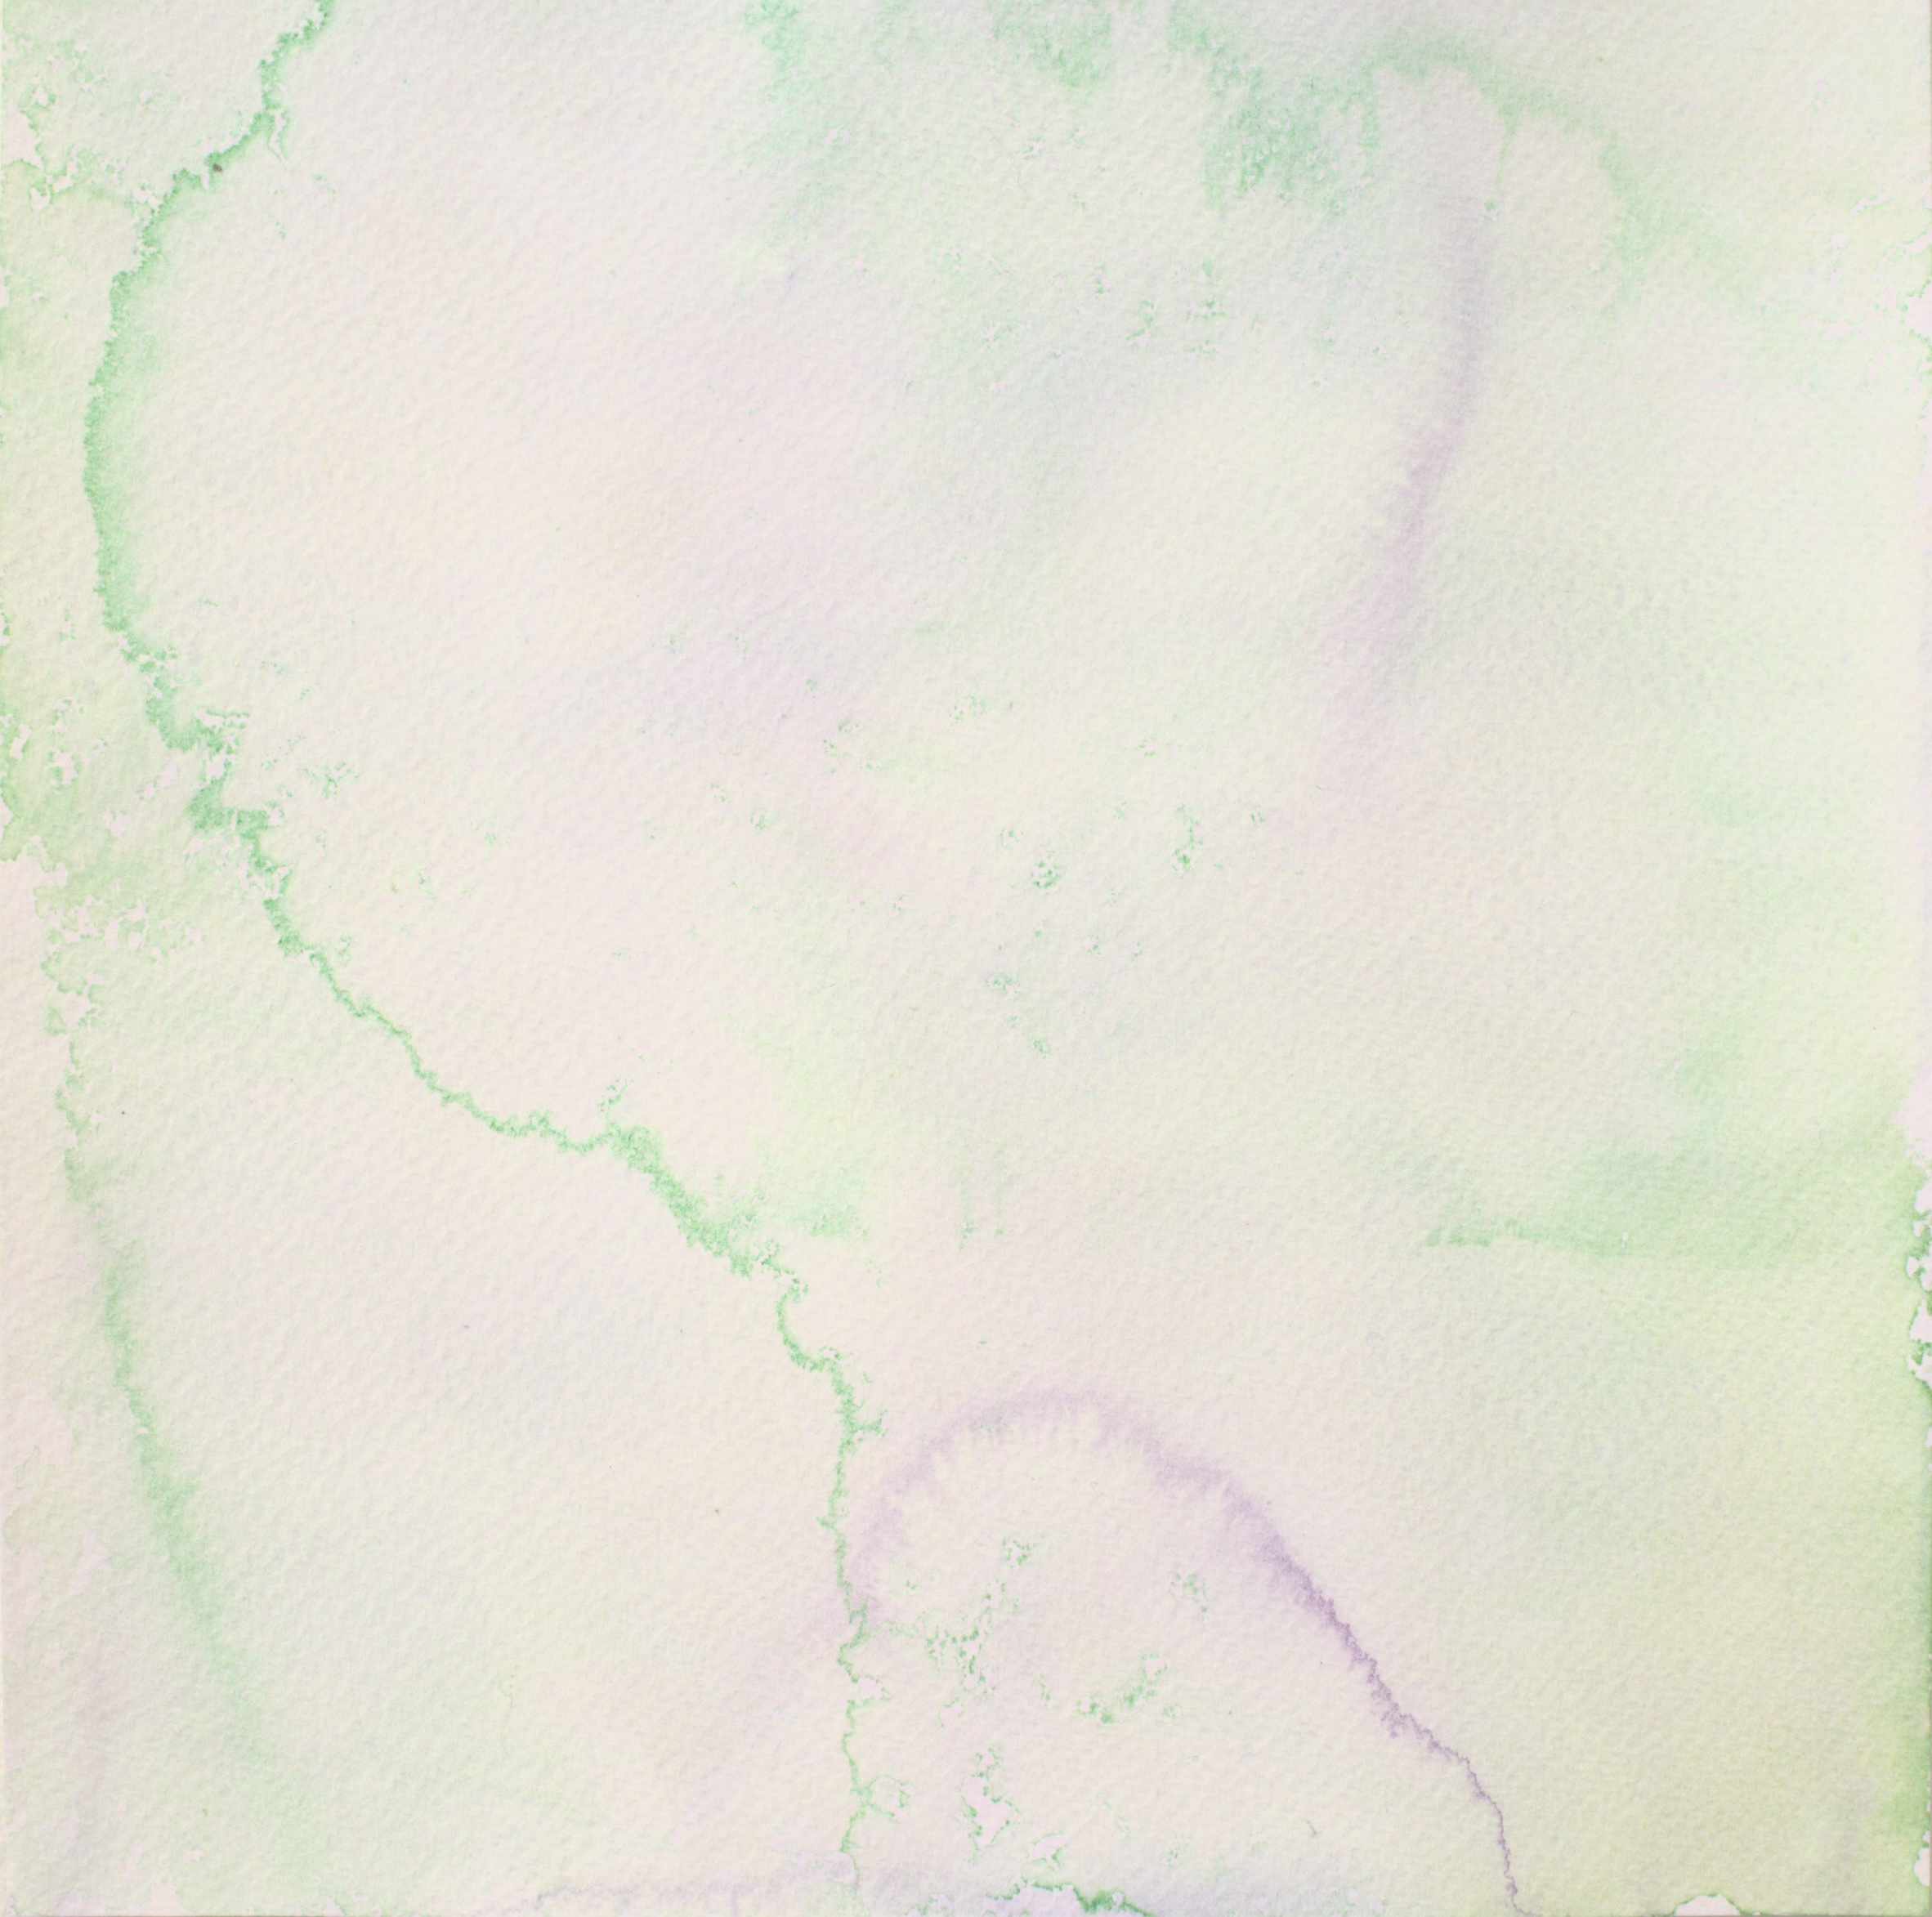 Helen Poyser's abstract, watercolour on paper works are process driven and utilise a brushstroke-less technique, usually in diptych form, to explore notions of self and the ego in contemporary painting